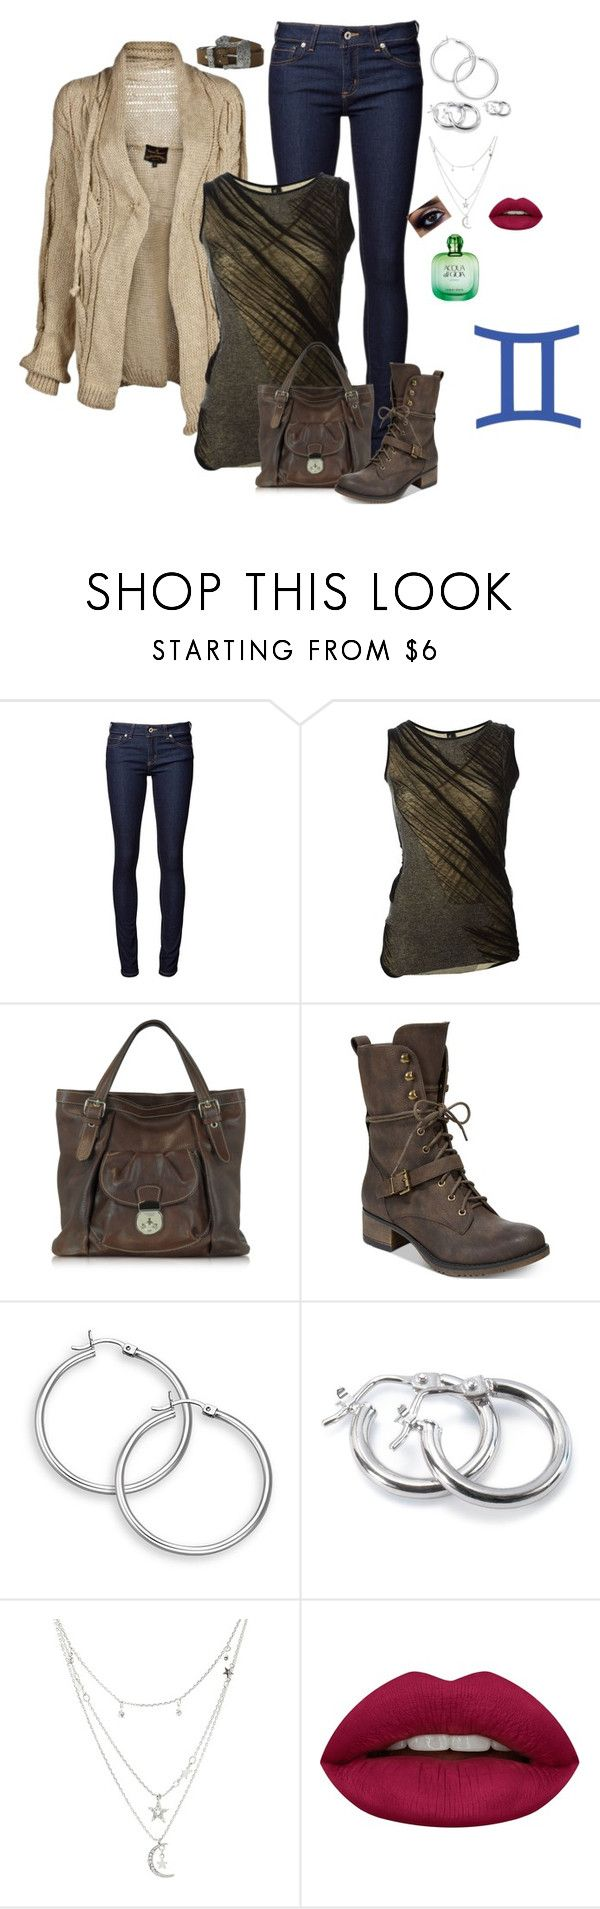 """""""Comfy and Pretty"""" by melissa-markel ❤ liked on Polyvore featuring Naked & Famous, Tom Rebl, Robe di Firenze, American Rag Cie, Blue Nile, Charlotte Russe, Huda Beauty, Giorgio Armani and M&F Western"""